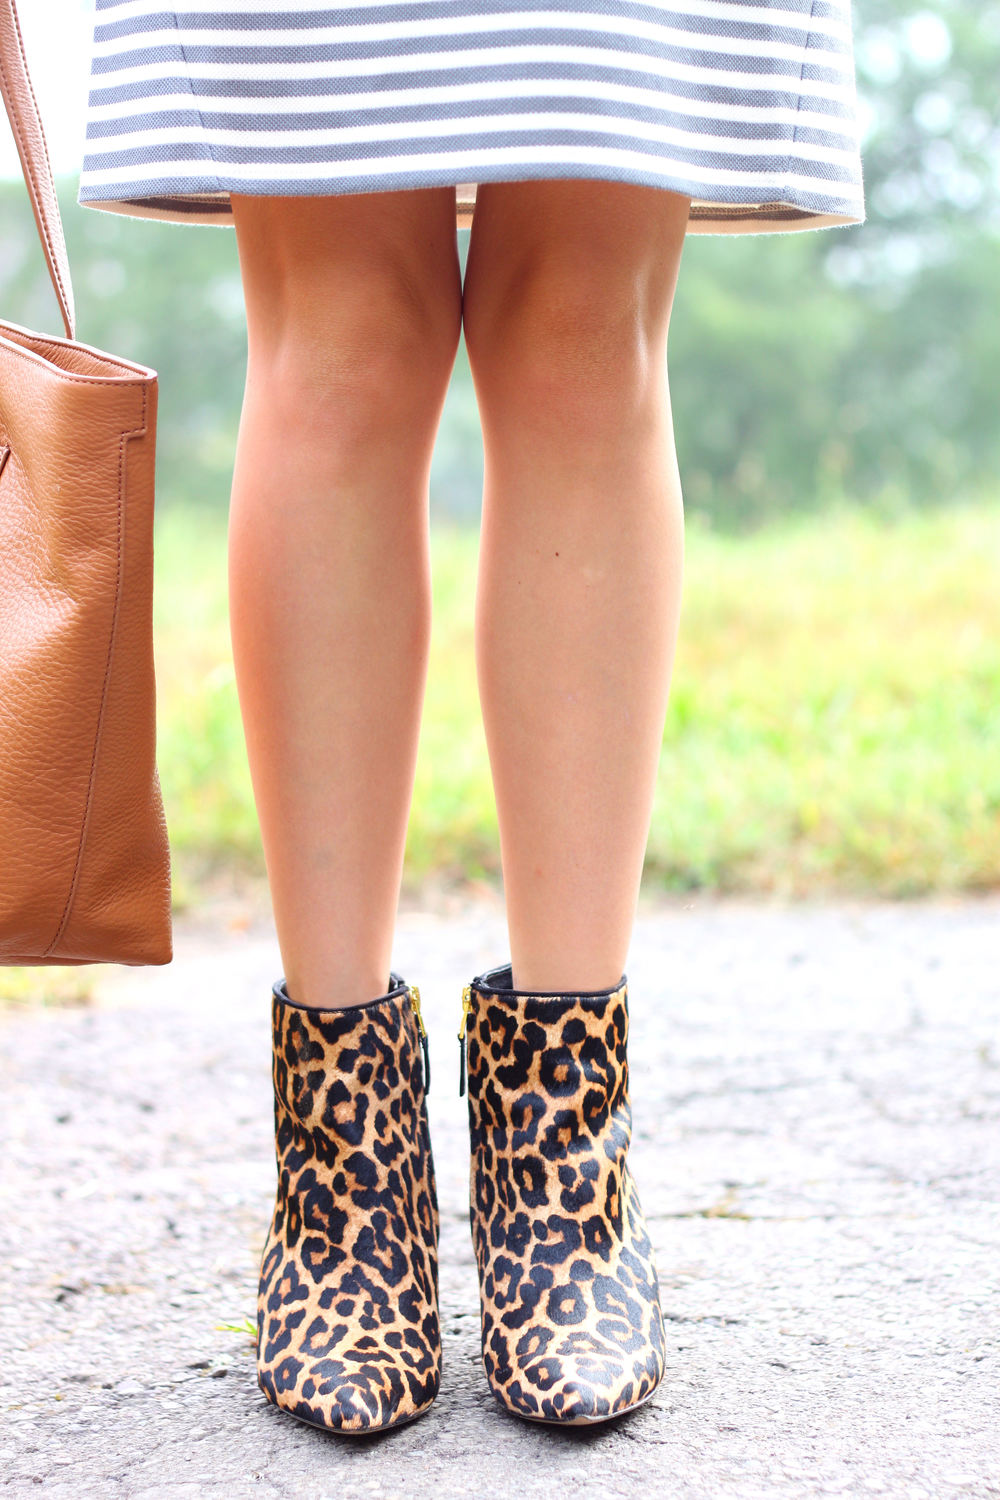 Leopard and Stripes- Enchanting Elegance